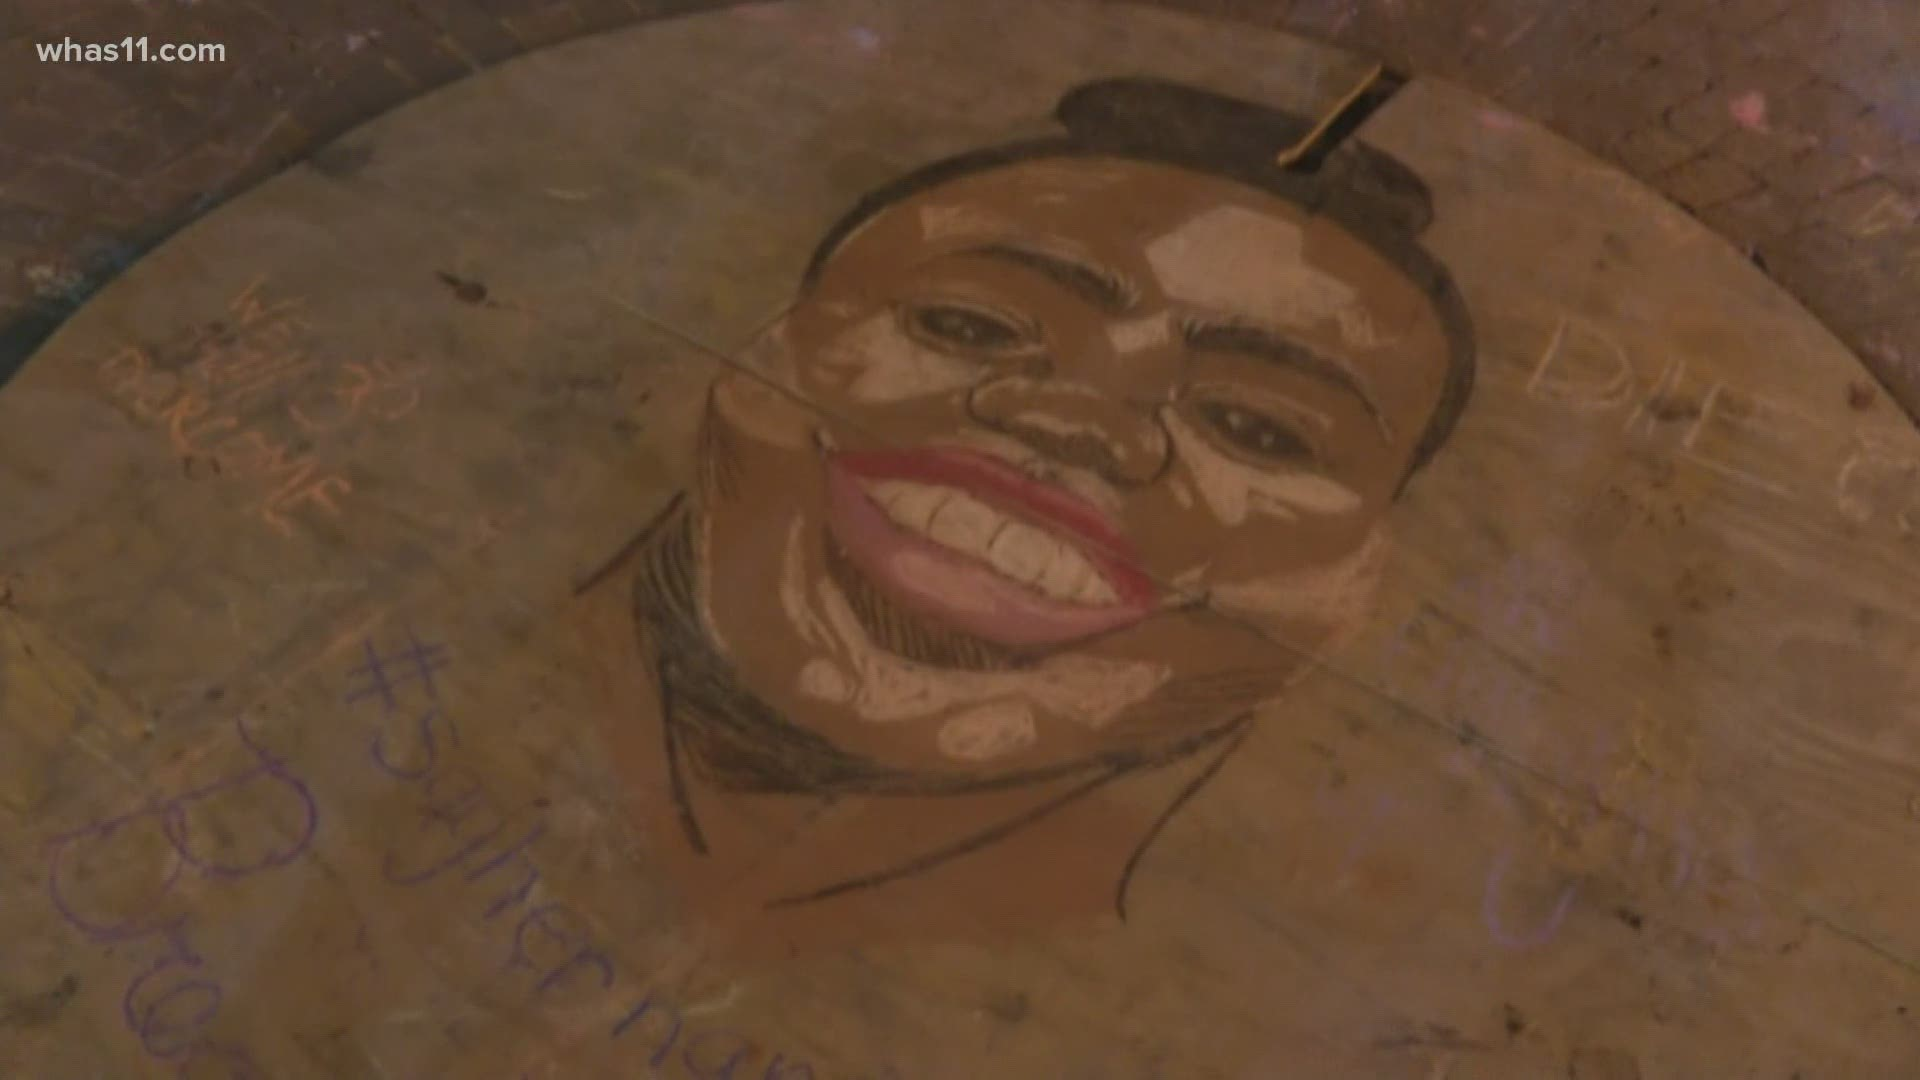 Mural Of Breonna Taylor Sits In Center Of Jefferson Square Park Kgw Com